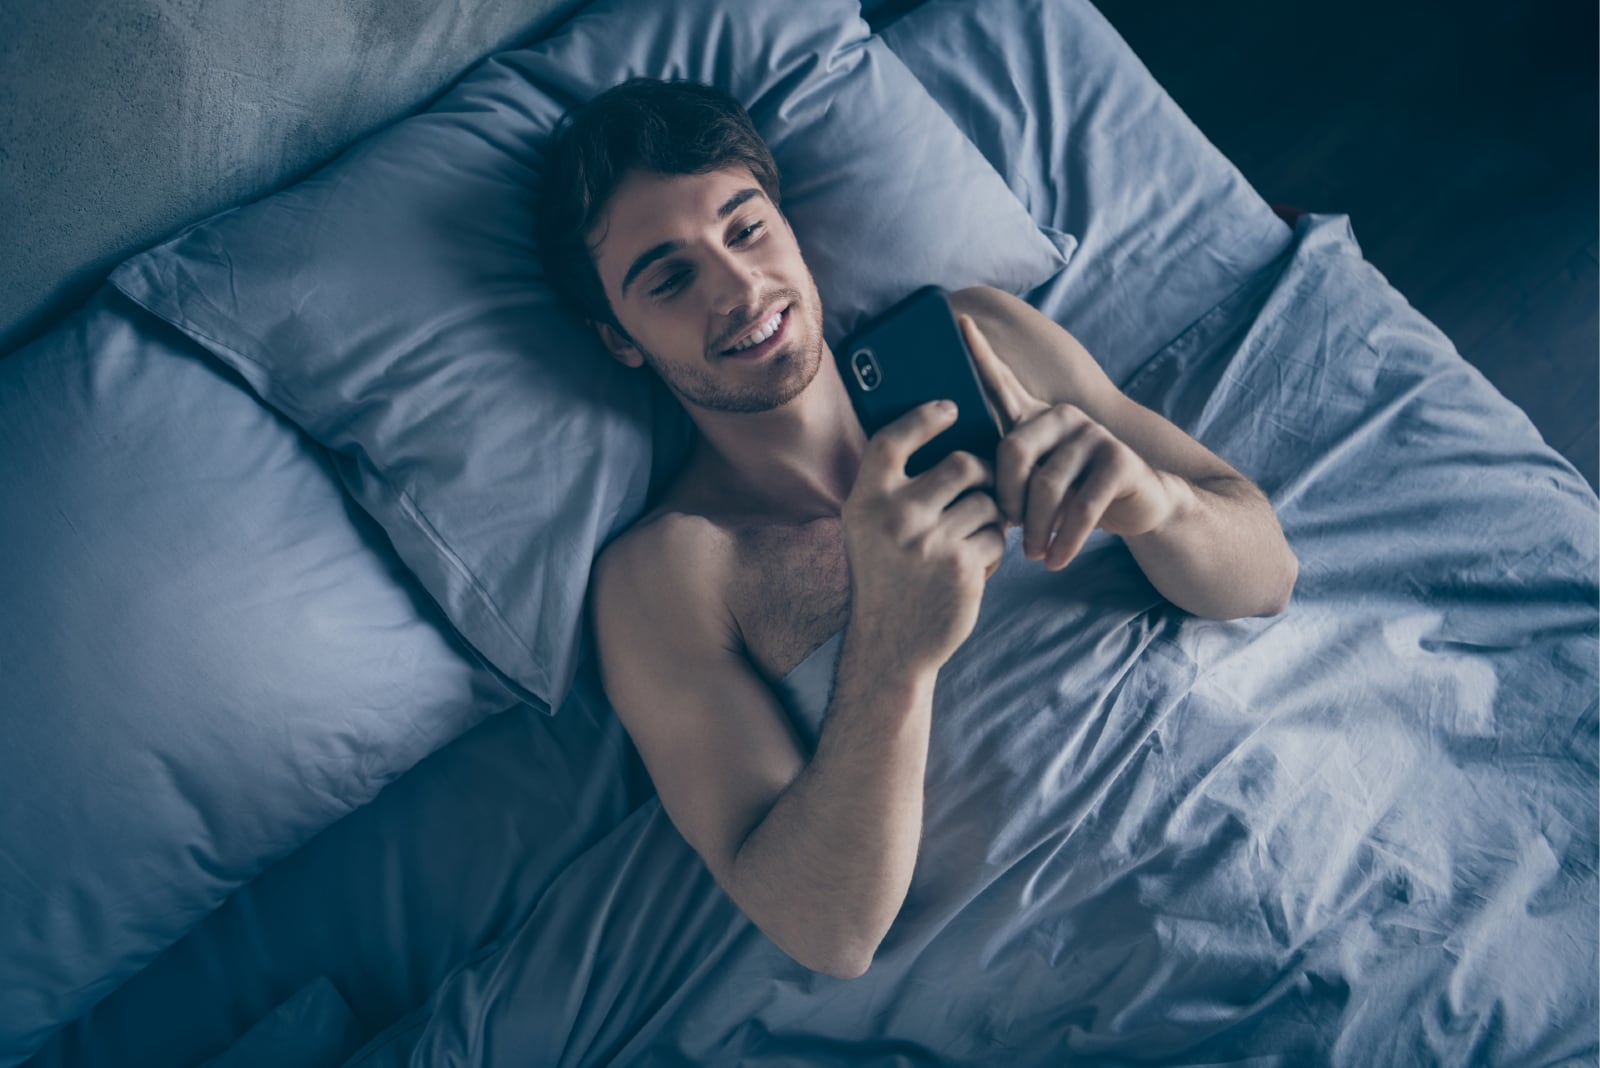 happy man laying on bed while using smartphone